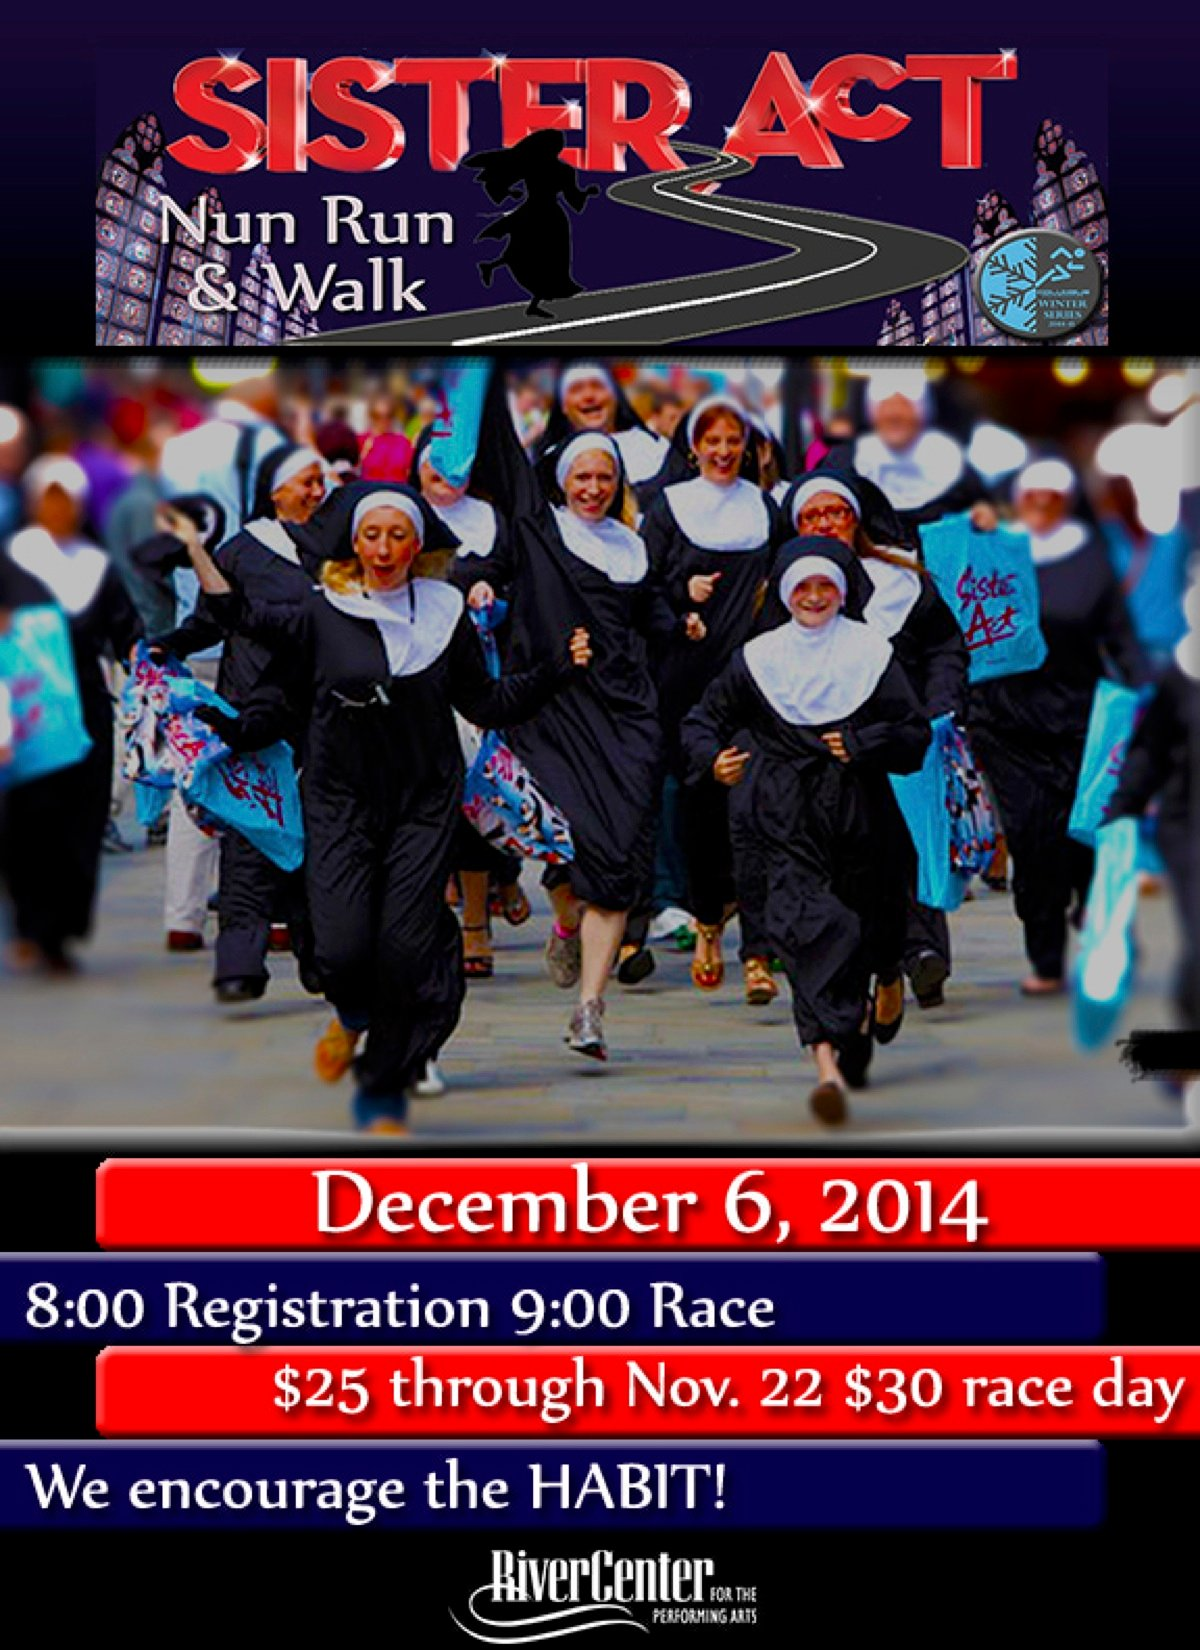 Sister Act Nun Run/Walk Fundraiser